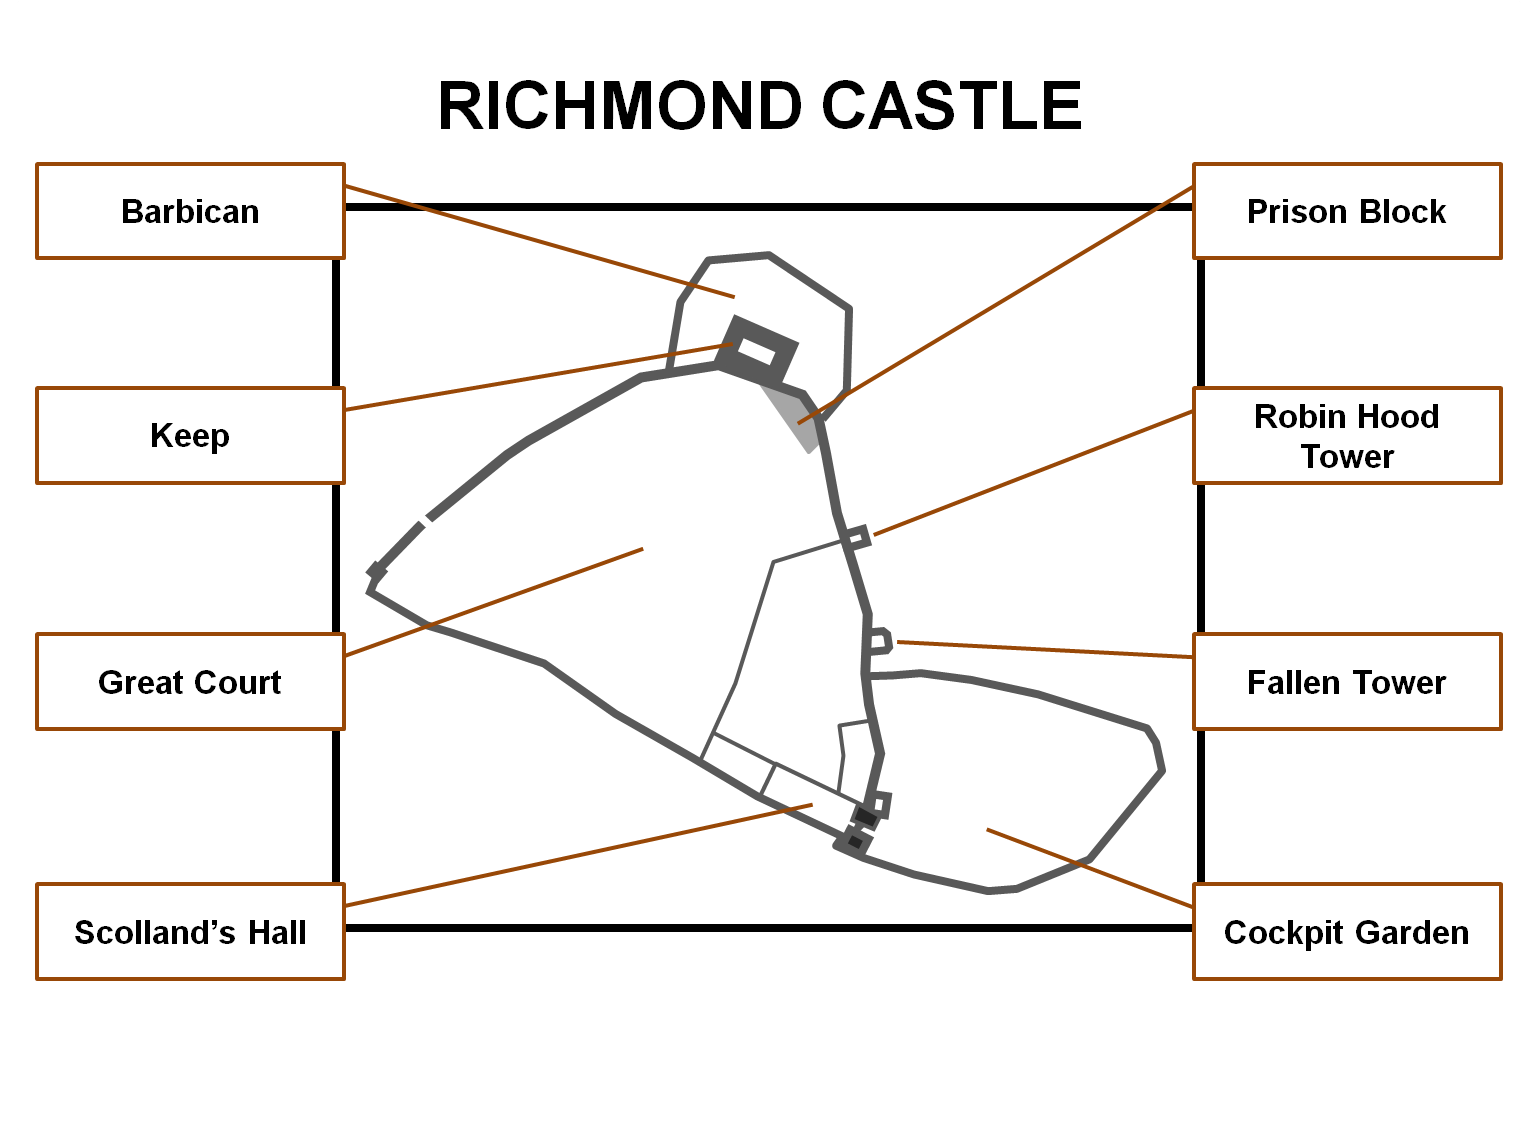 richmond castle yorkshire castles forts and battles richmond castle layout the castle occupied a d shaped area but there was also a large barbican and eastern enclosure both of which were probably